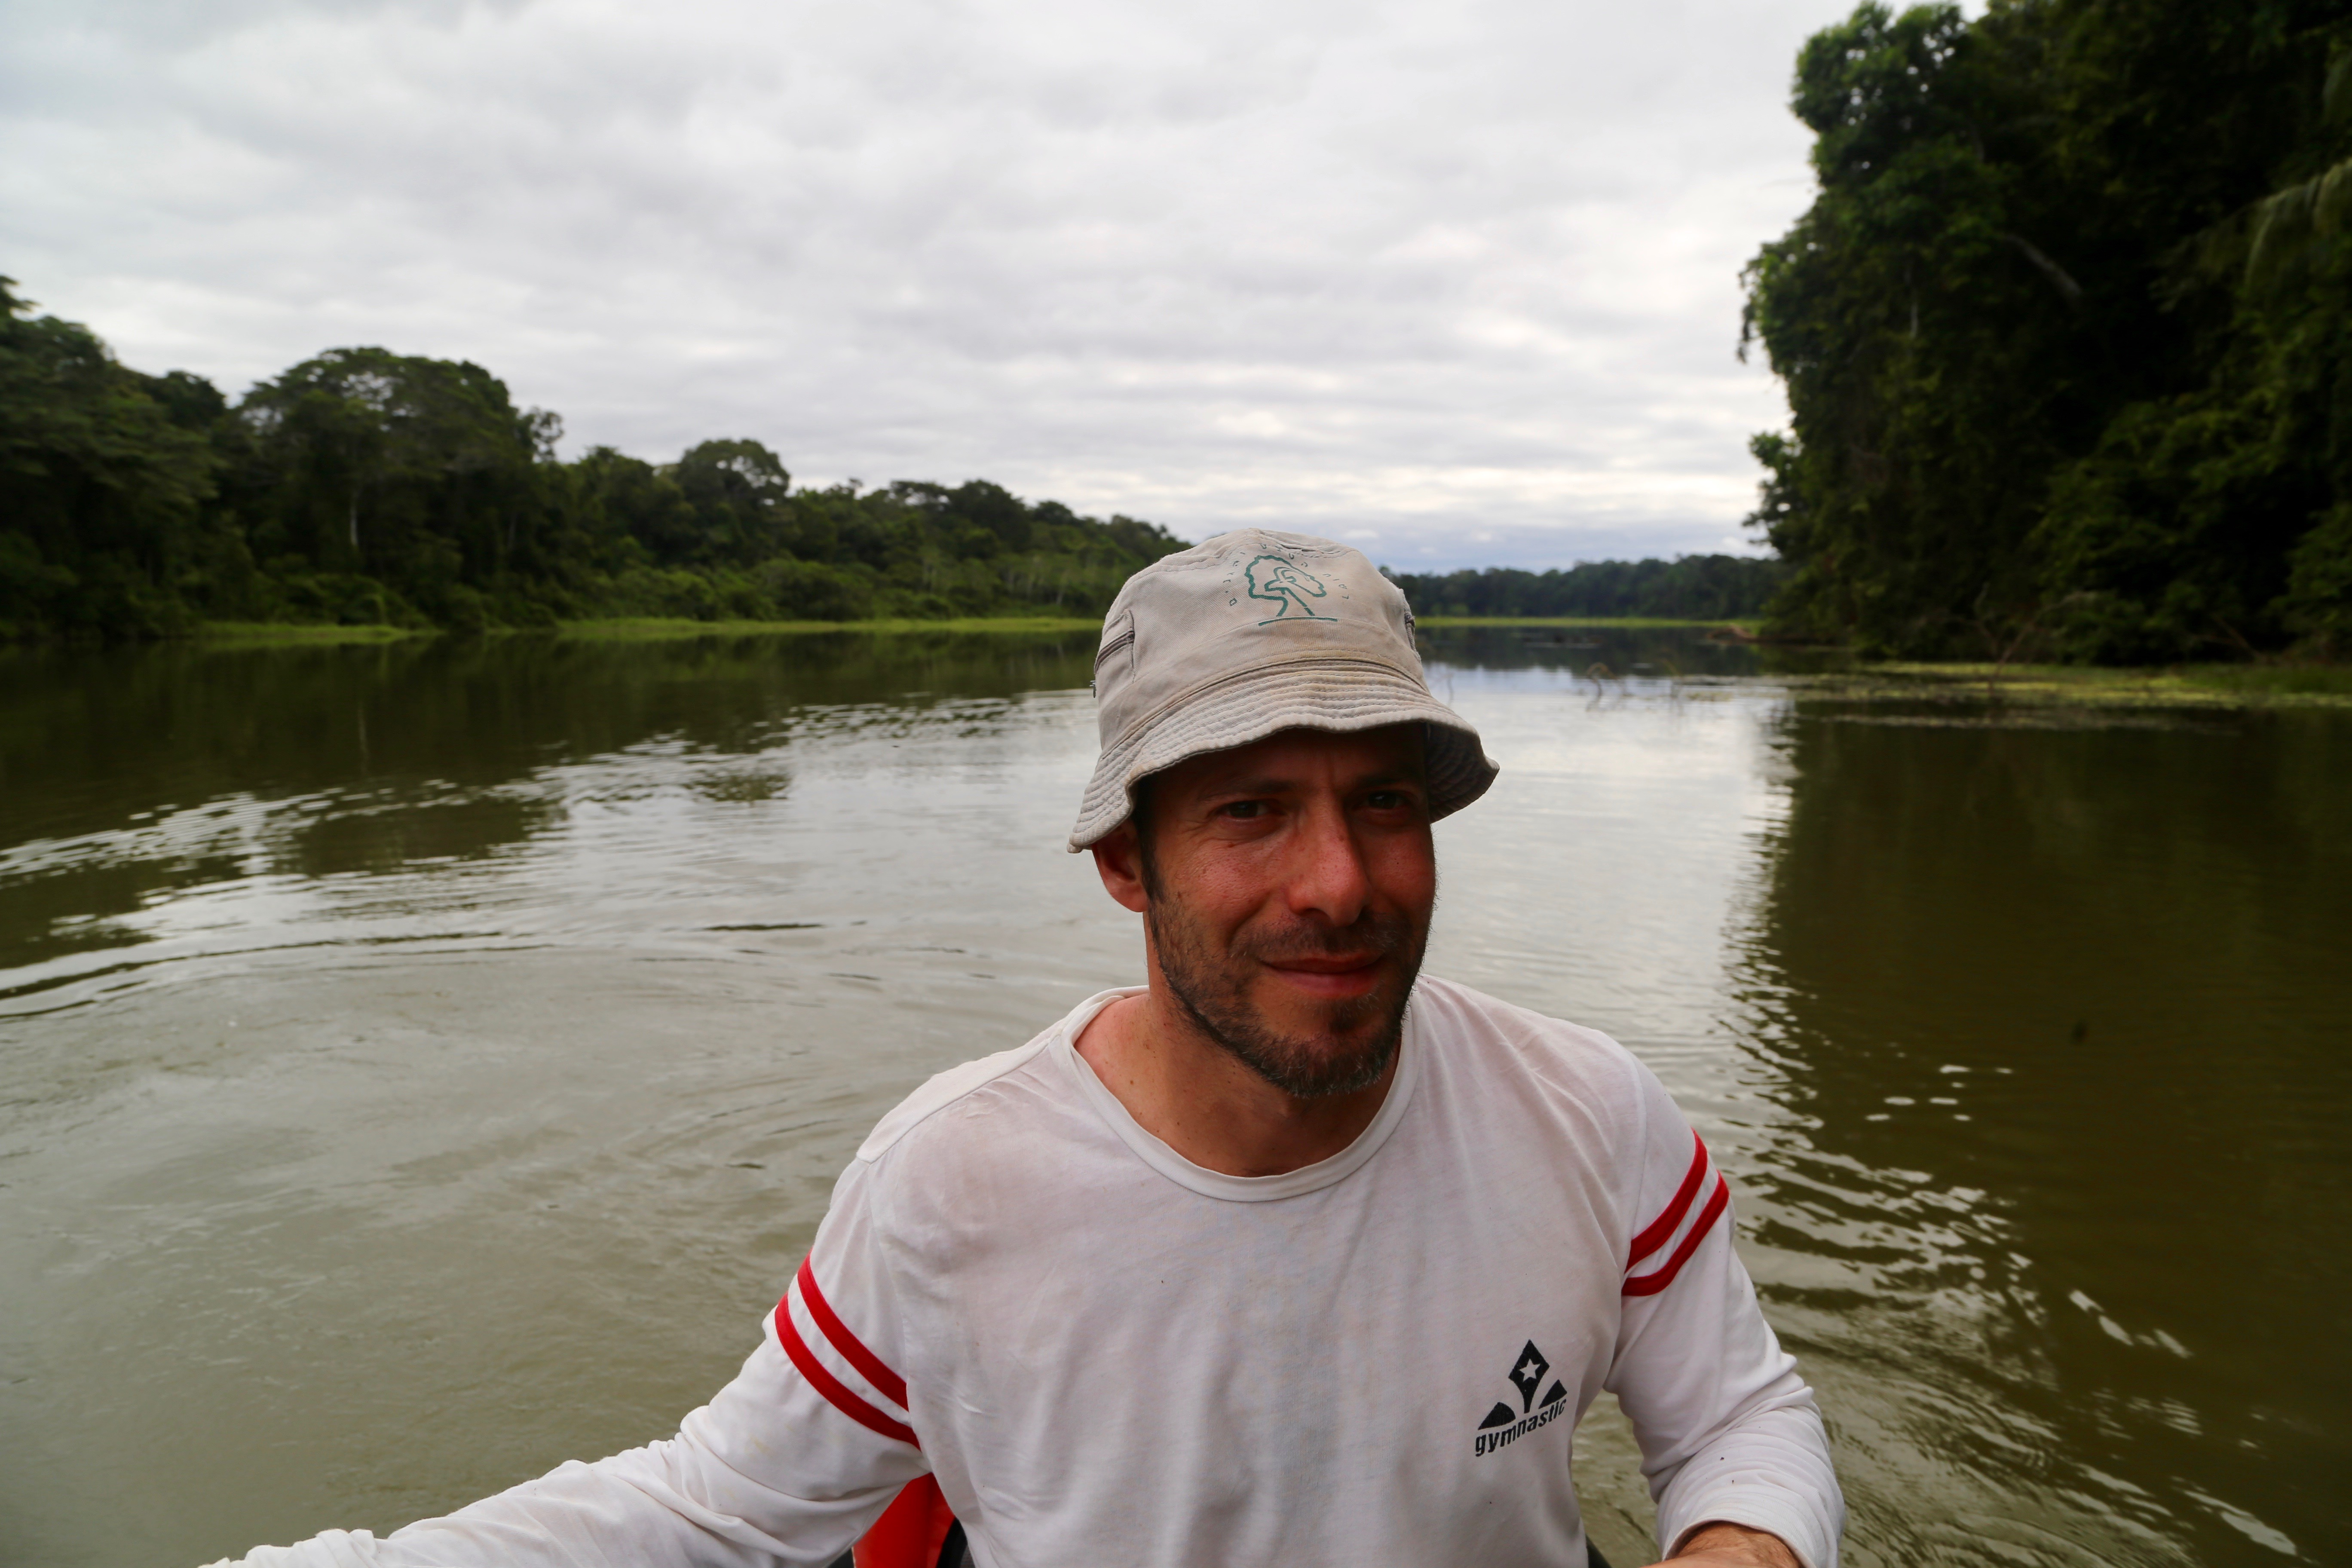 Adi Barocas enjoying his first day on an oxbow lake in Manu National Park in pursuit of otters.